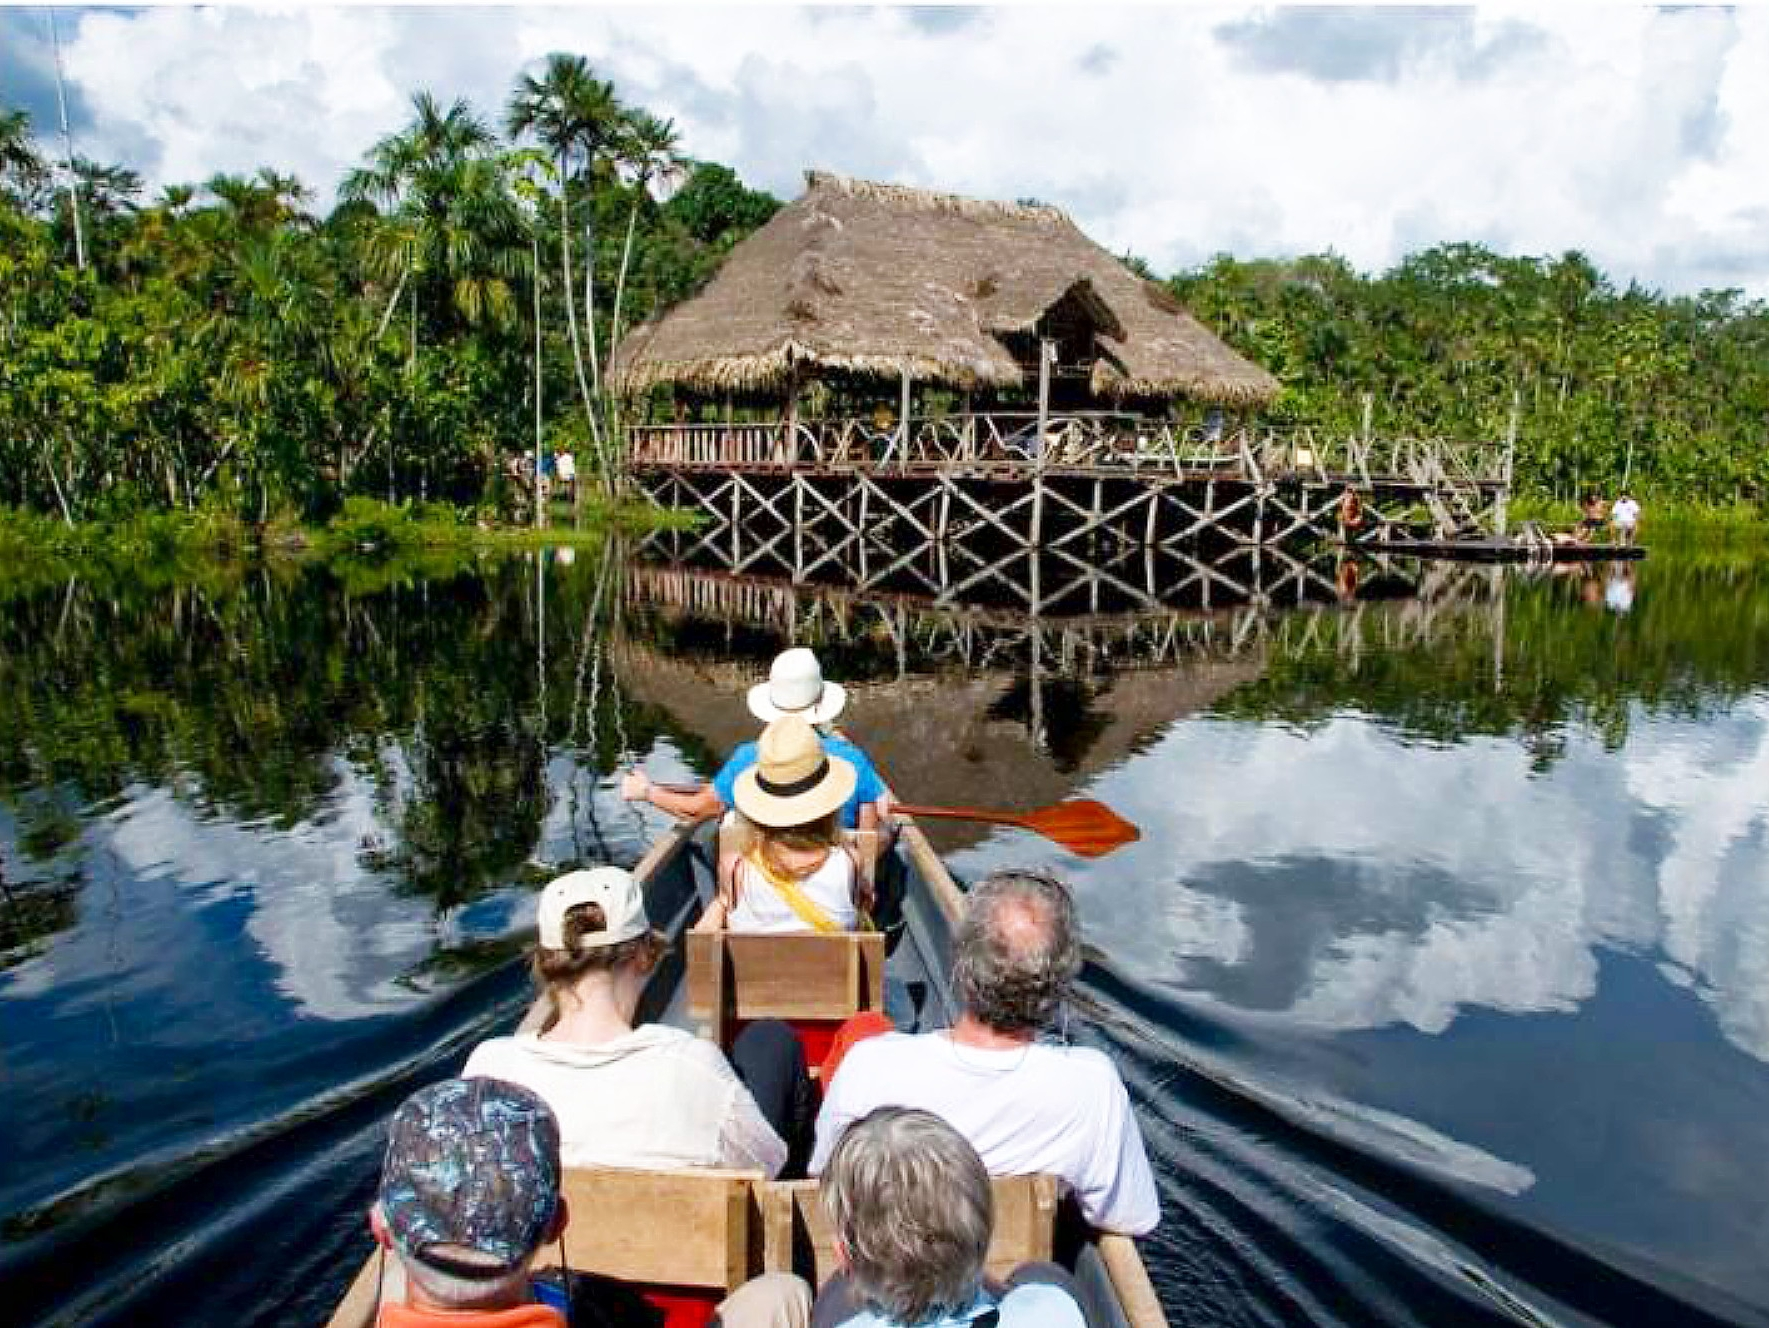 Family summer holiday in the Amazon